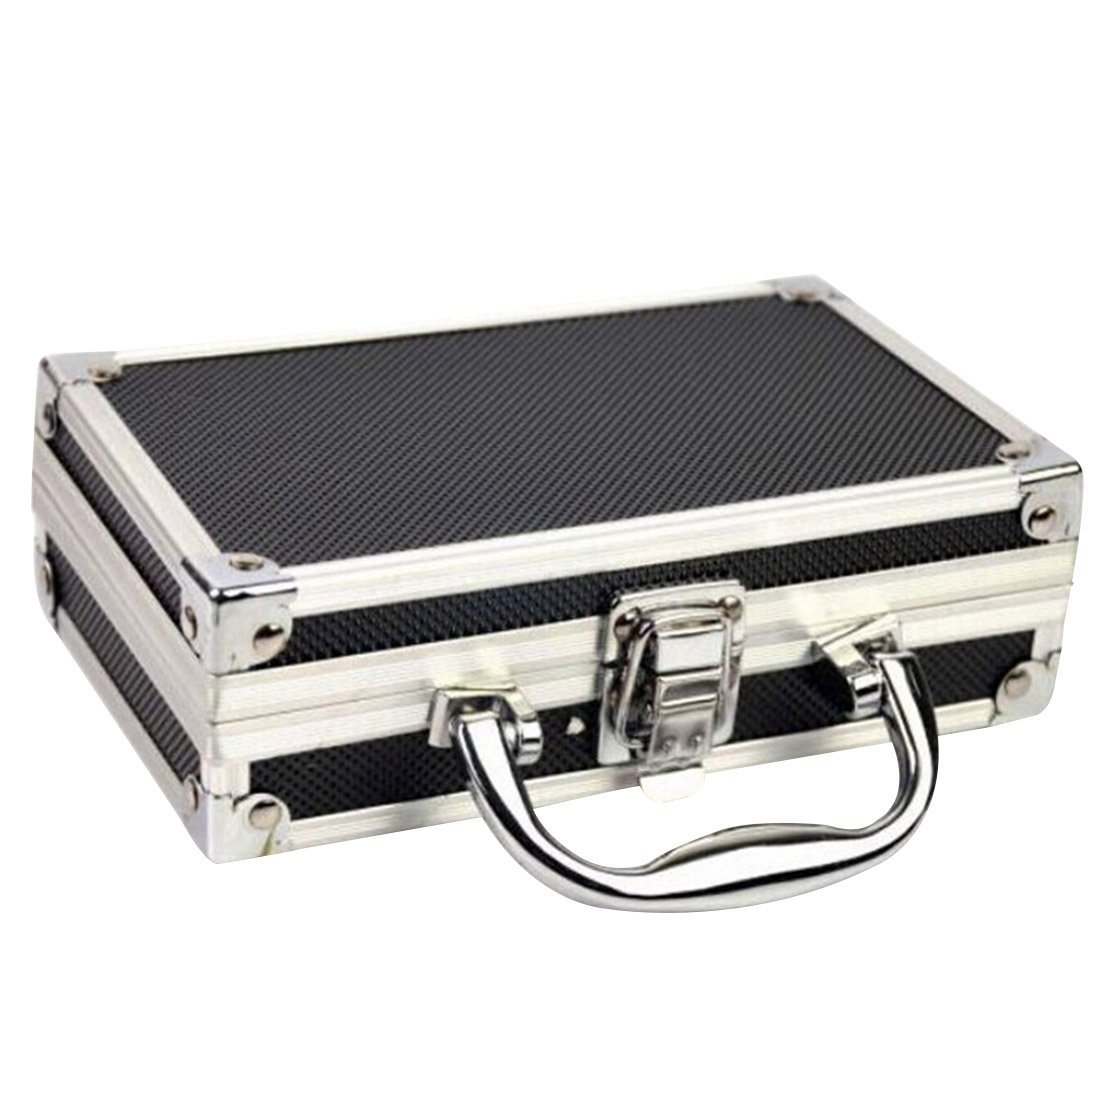 XINGYUE Aluminum Case Flight Case Tool Box Metal Hard Carrying Case with Locks